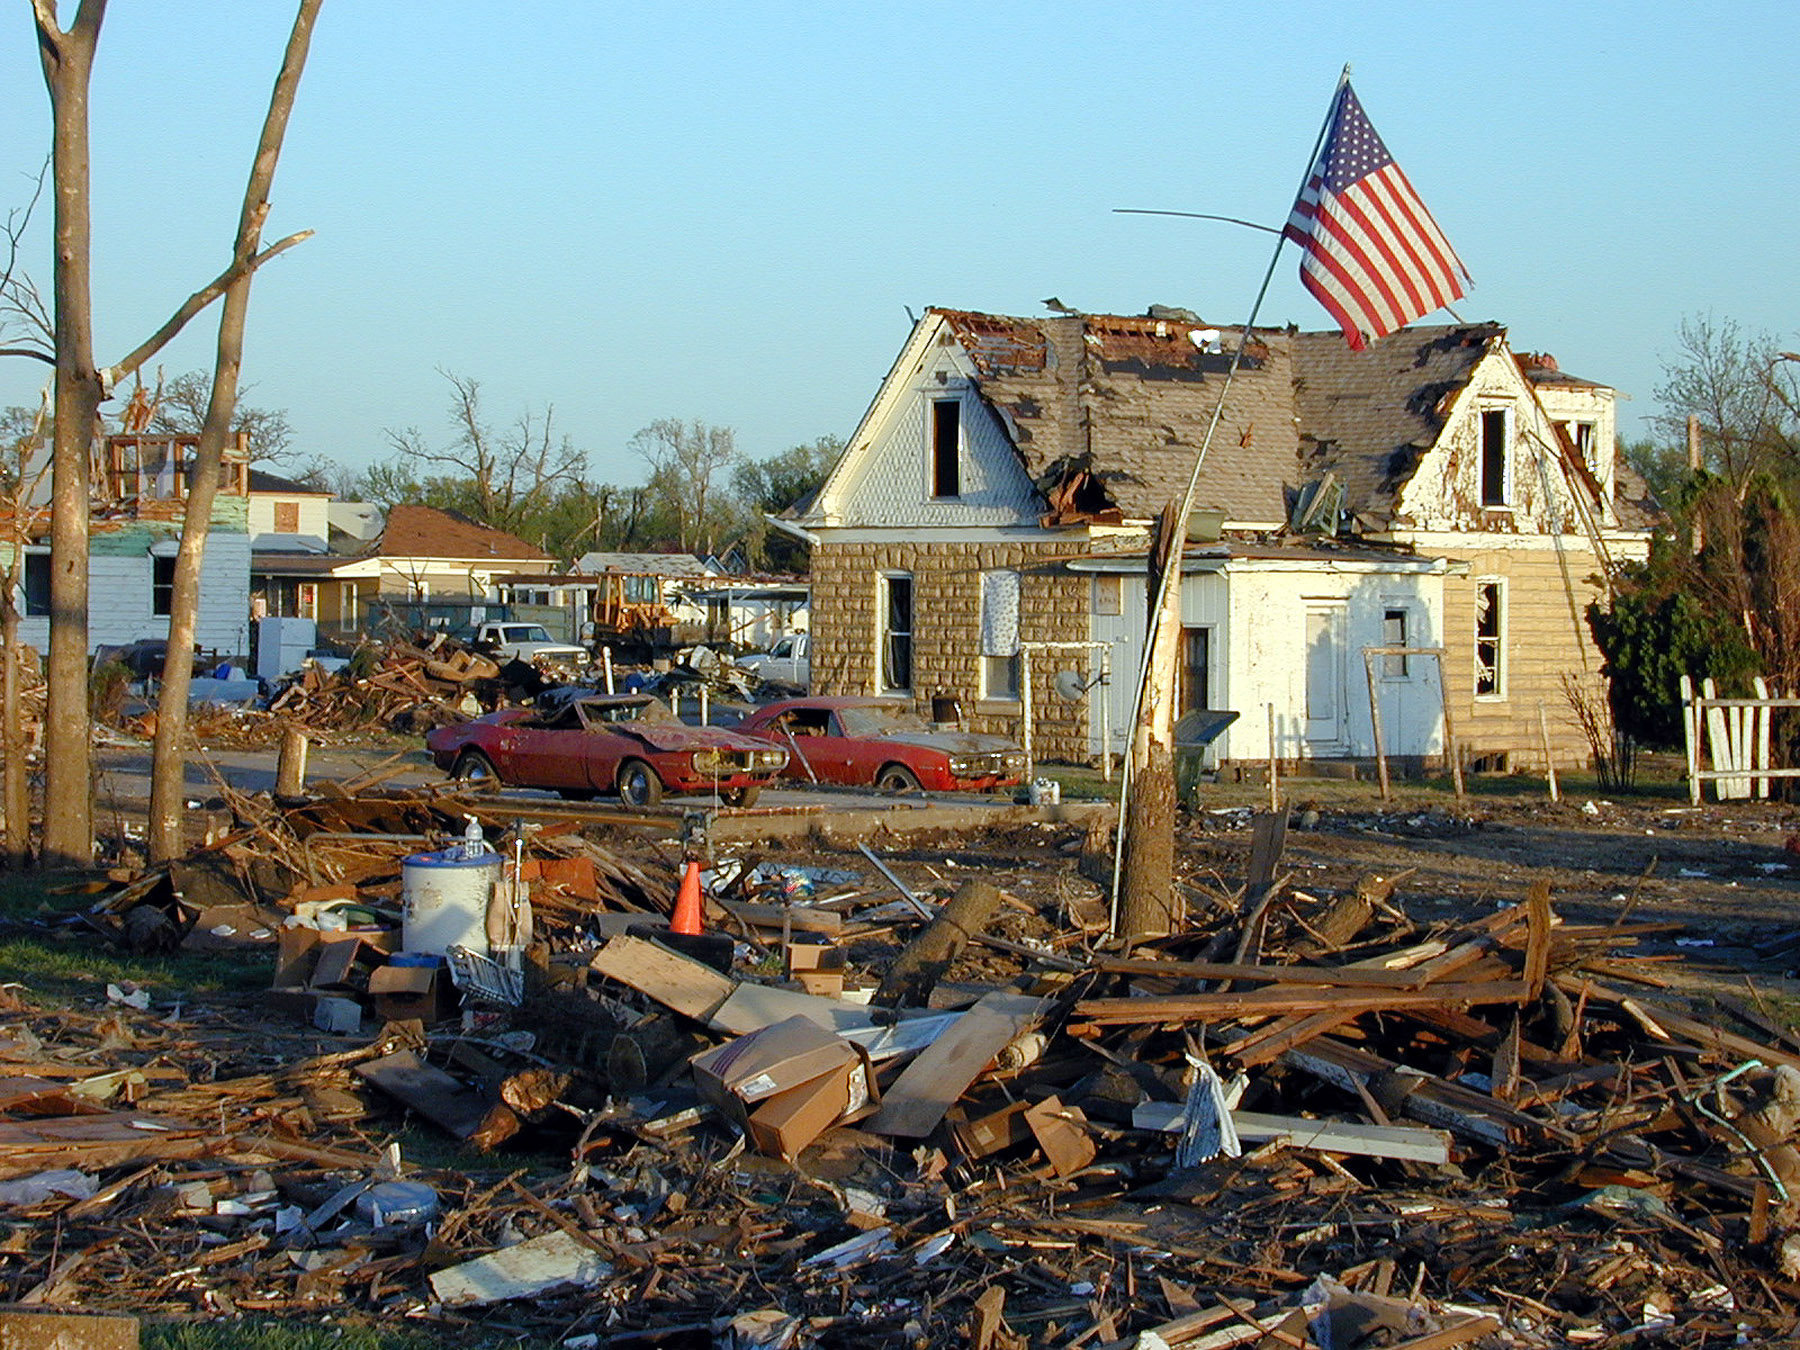 Hoisington United States  city photos gallery : FEMA 1373 Photograph by Dave Saville taken on 04 26 2001 in ...